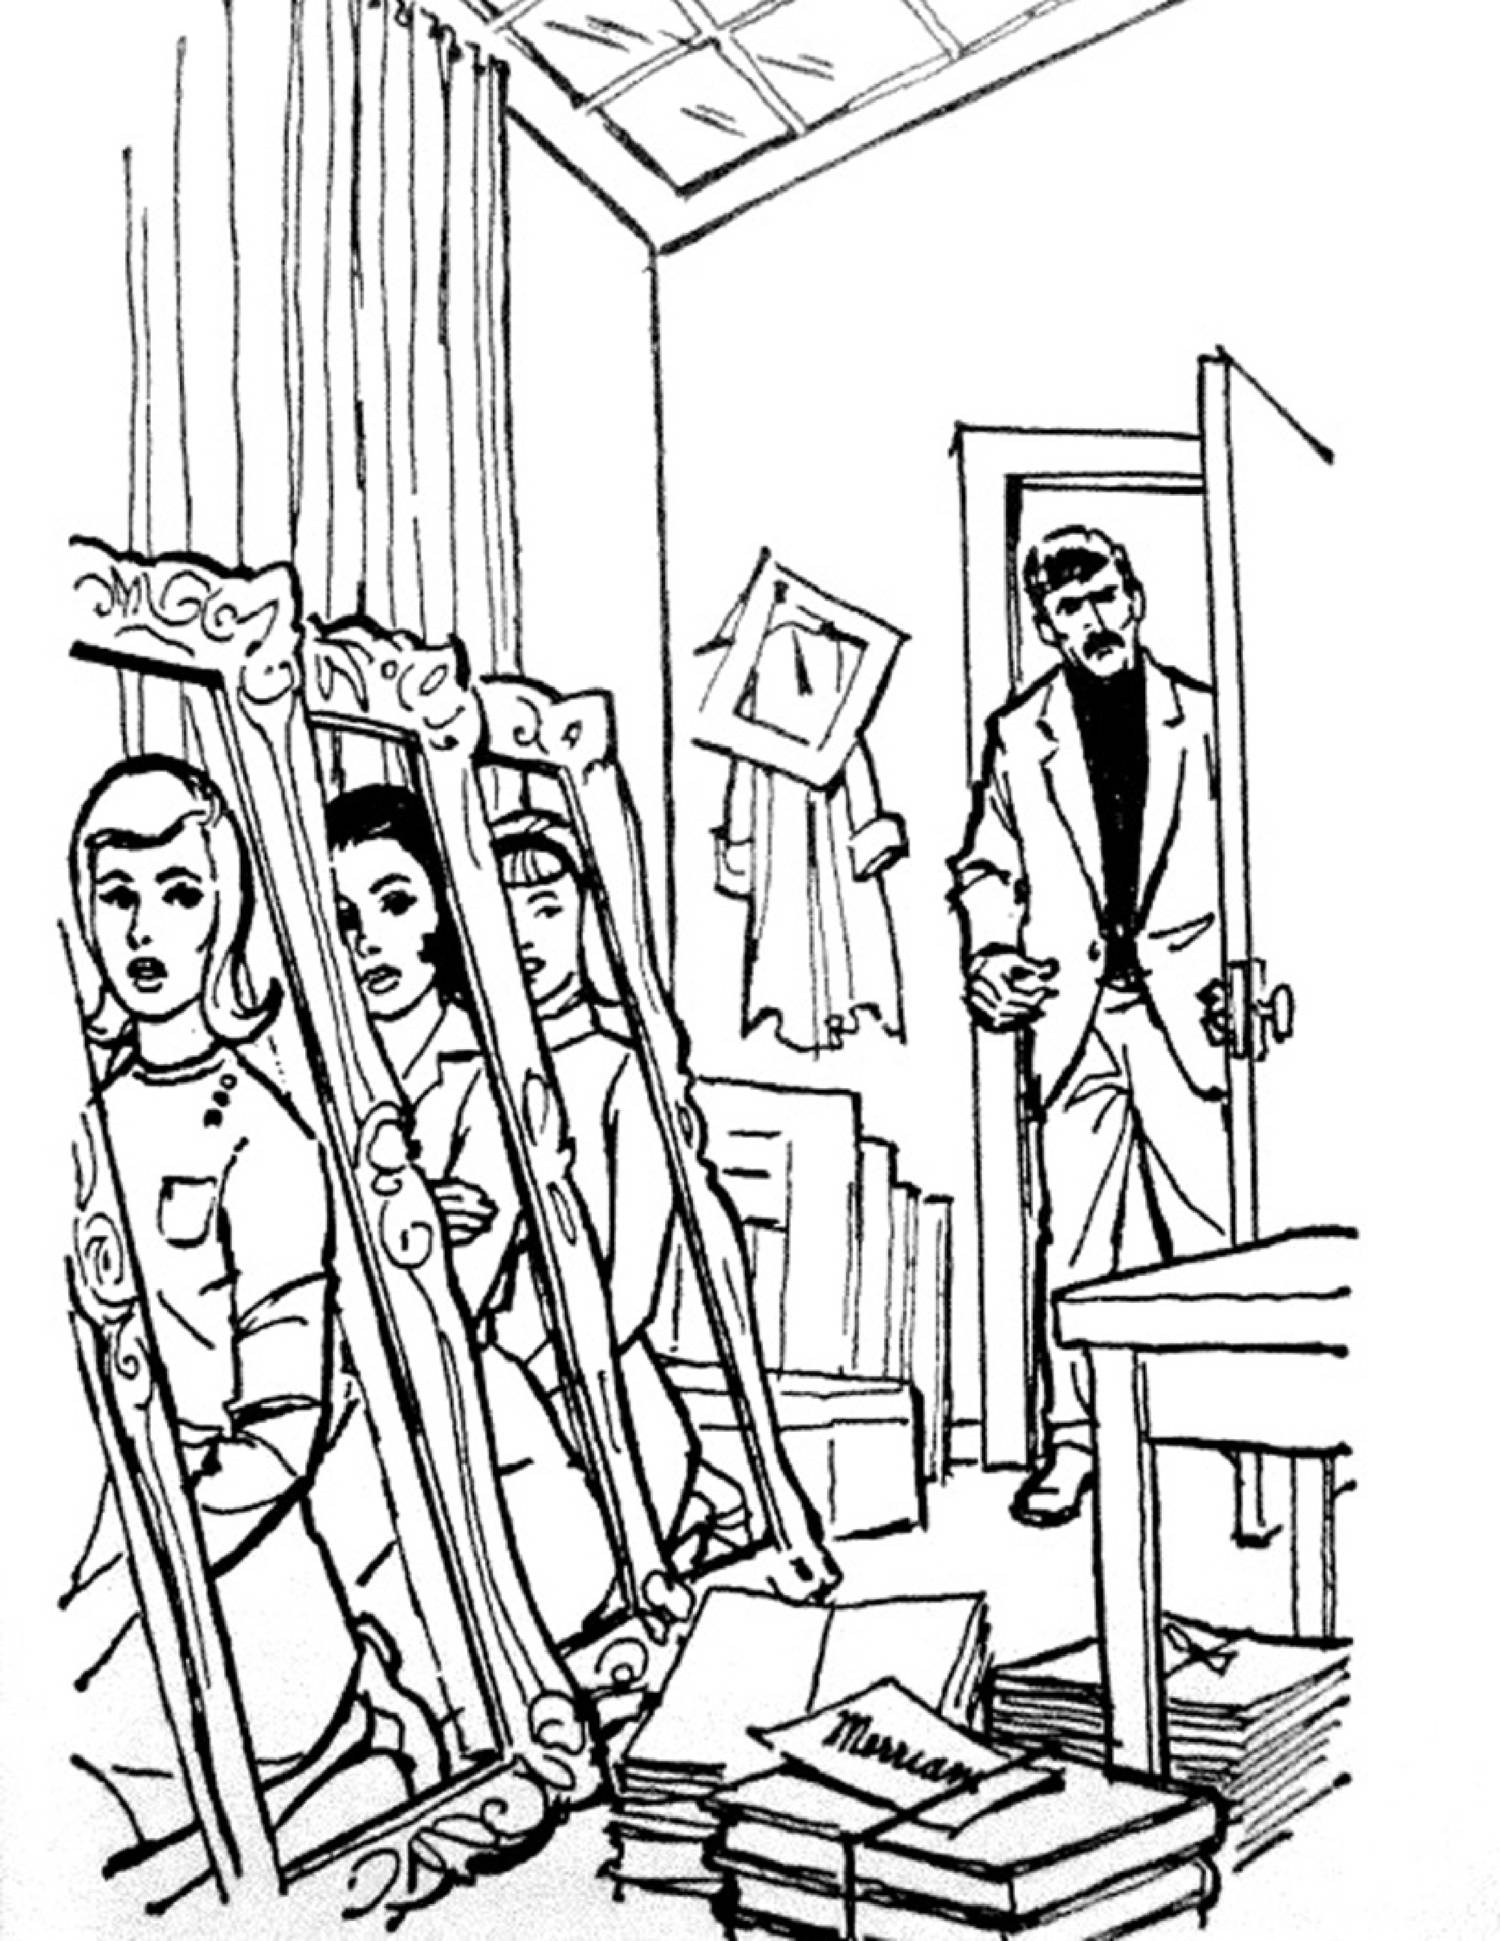 nancy drew coloring pages - photo#2